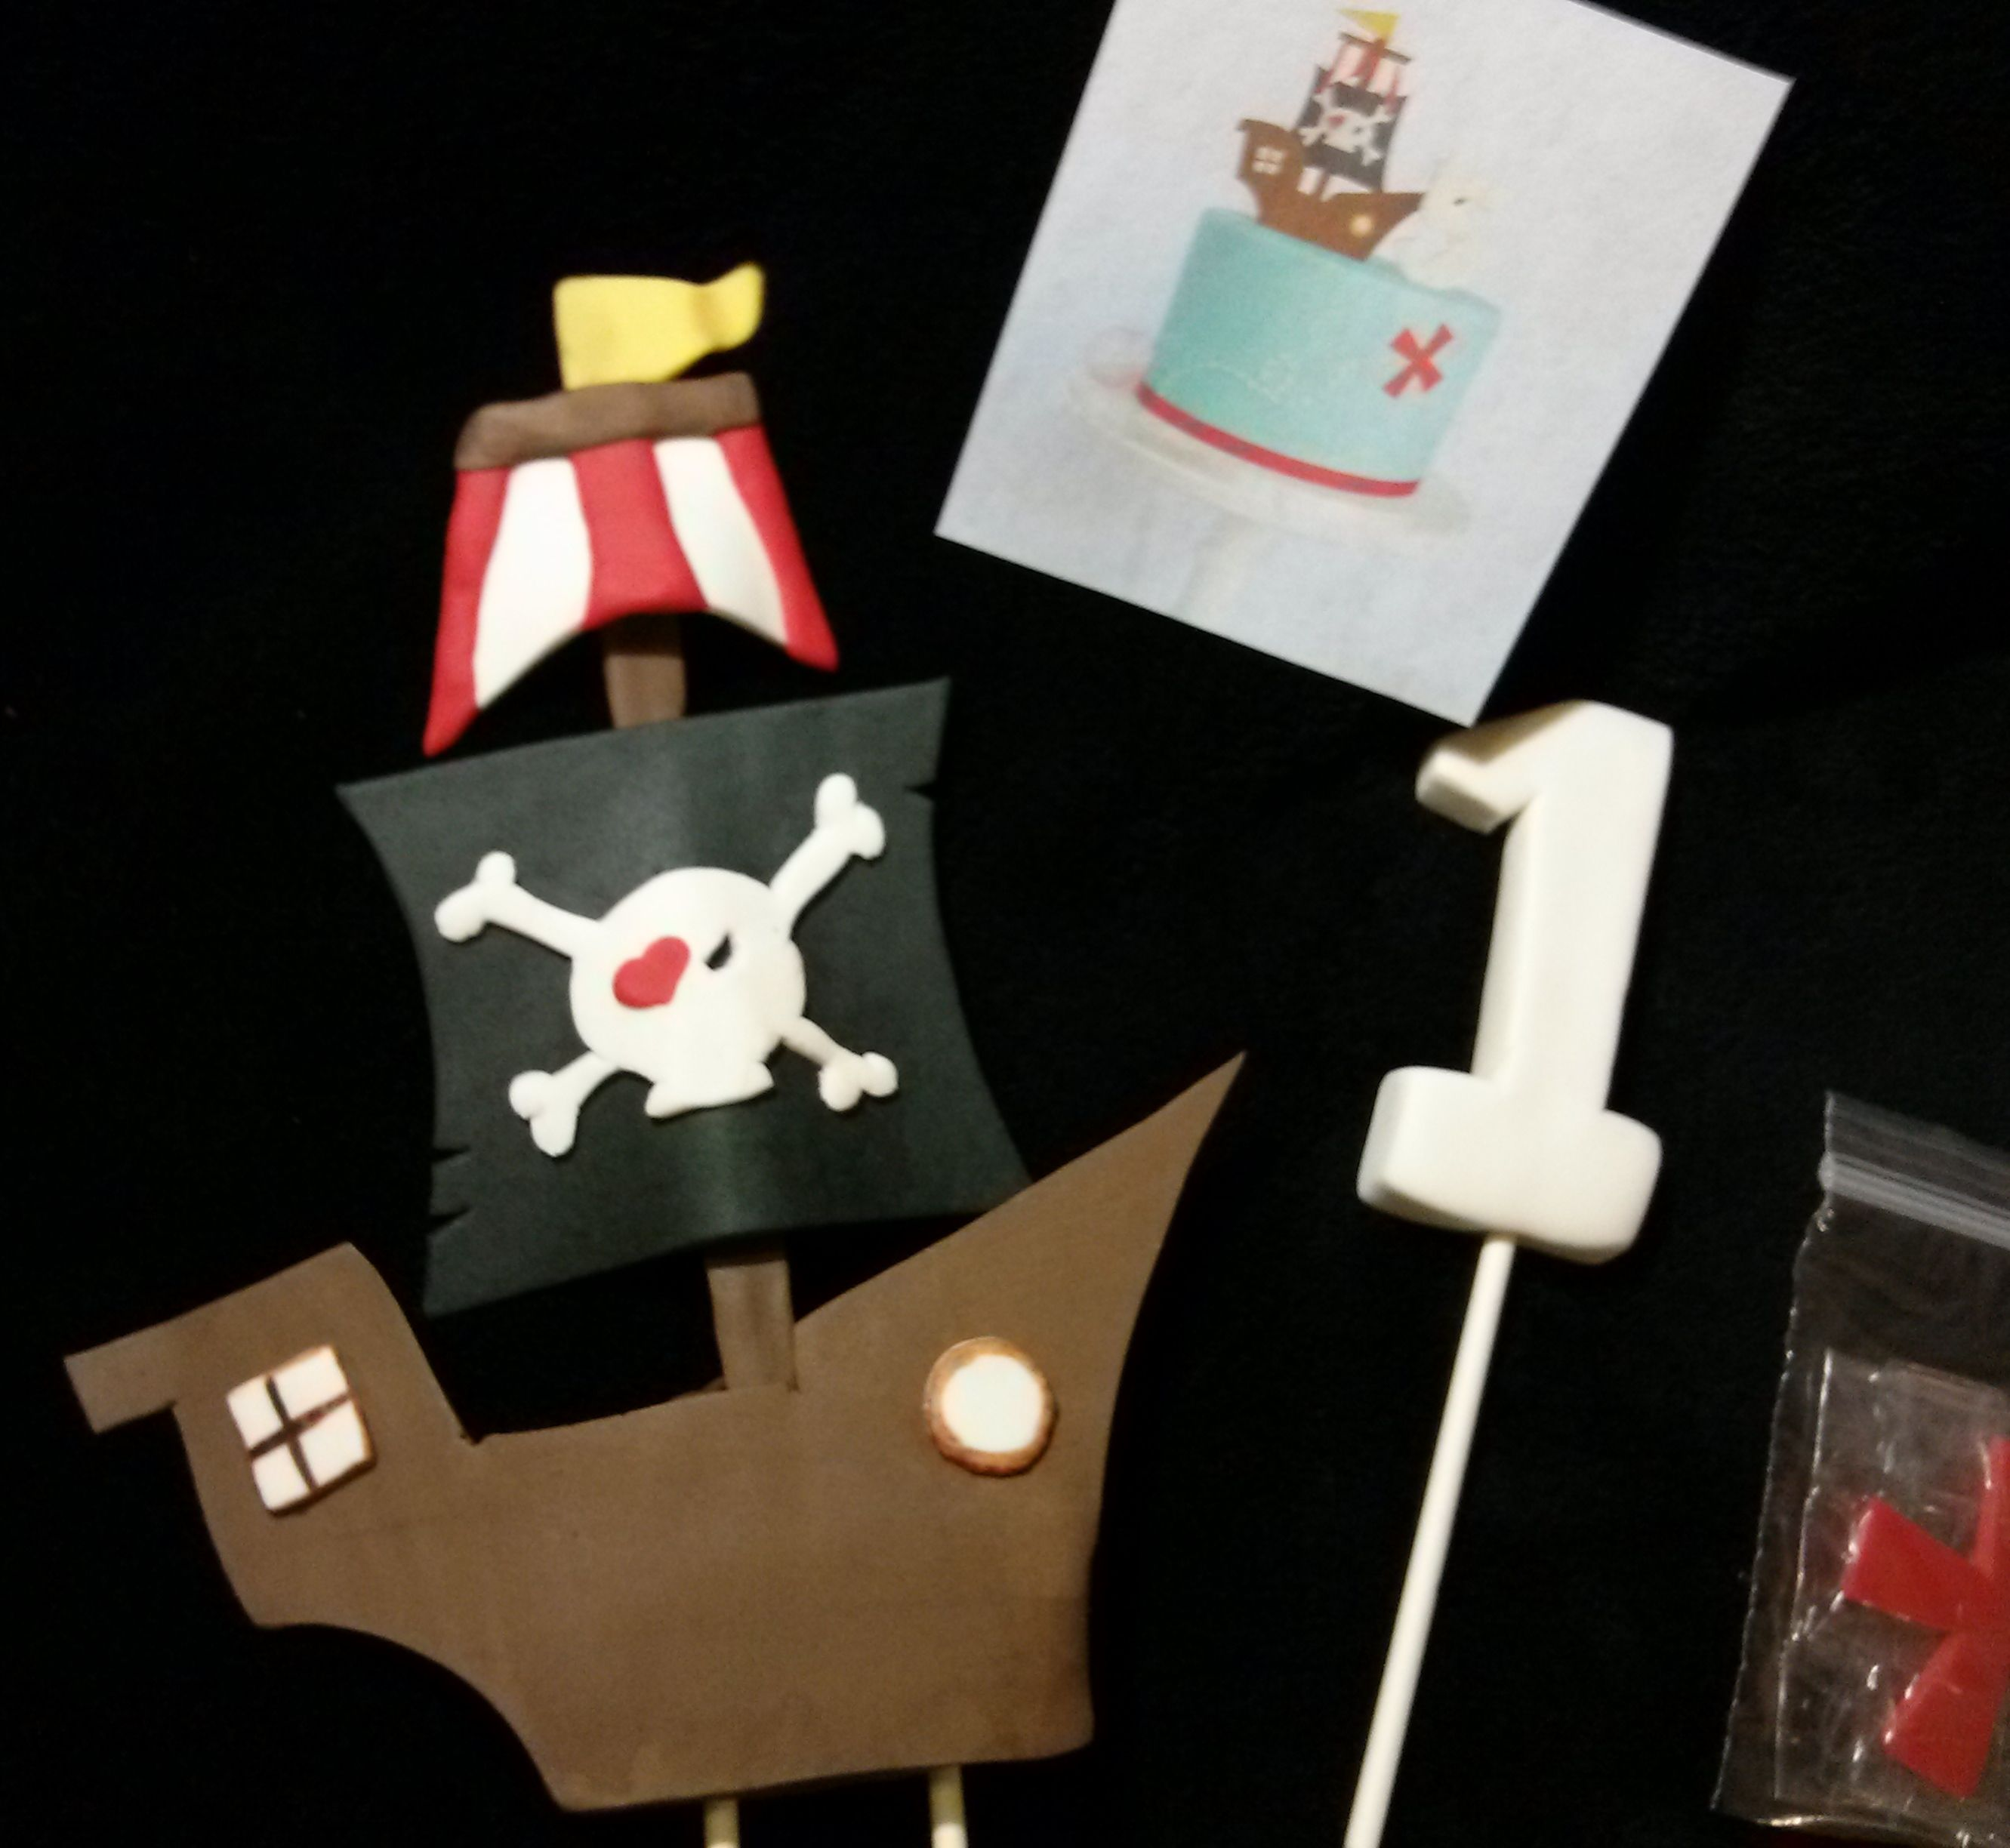 Pirate Ship #1 and Red X Cake Topper